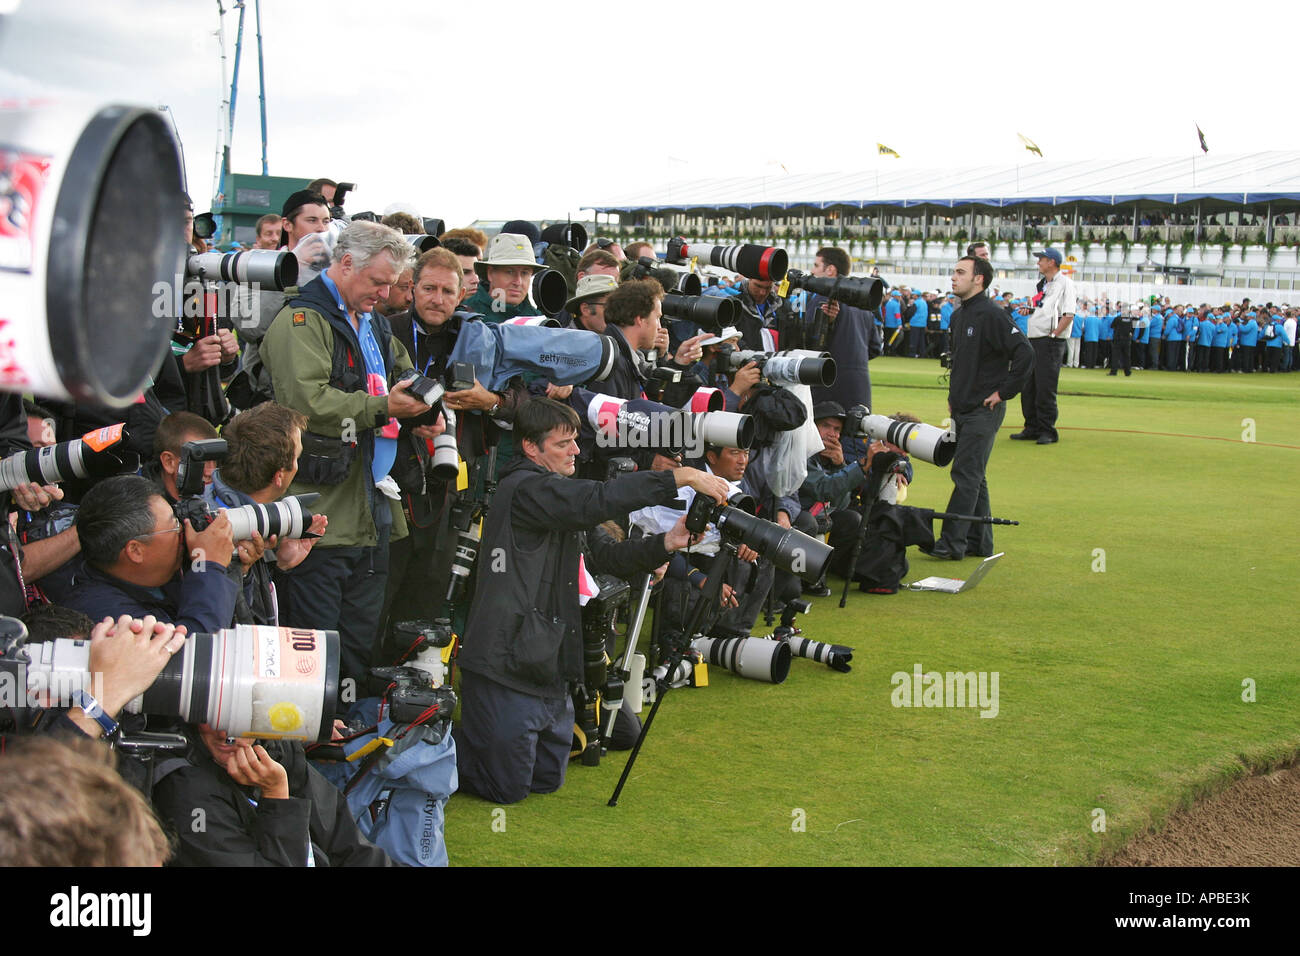 Press pack waiting to shoot the winner of the British Open Golf Championship Carnoustie Scotland Stock Photo